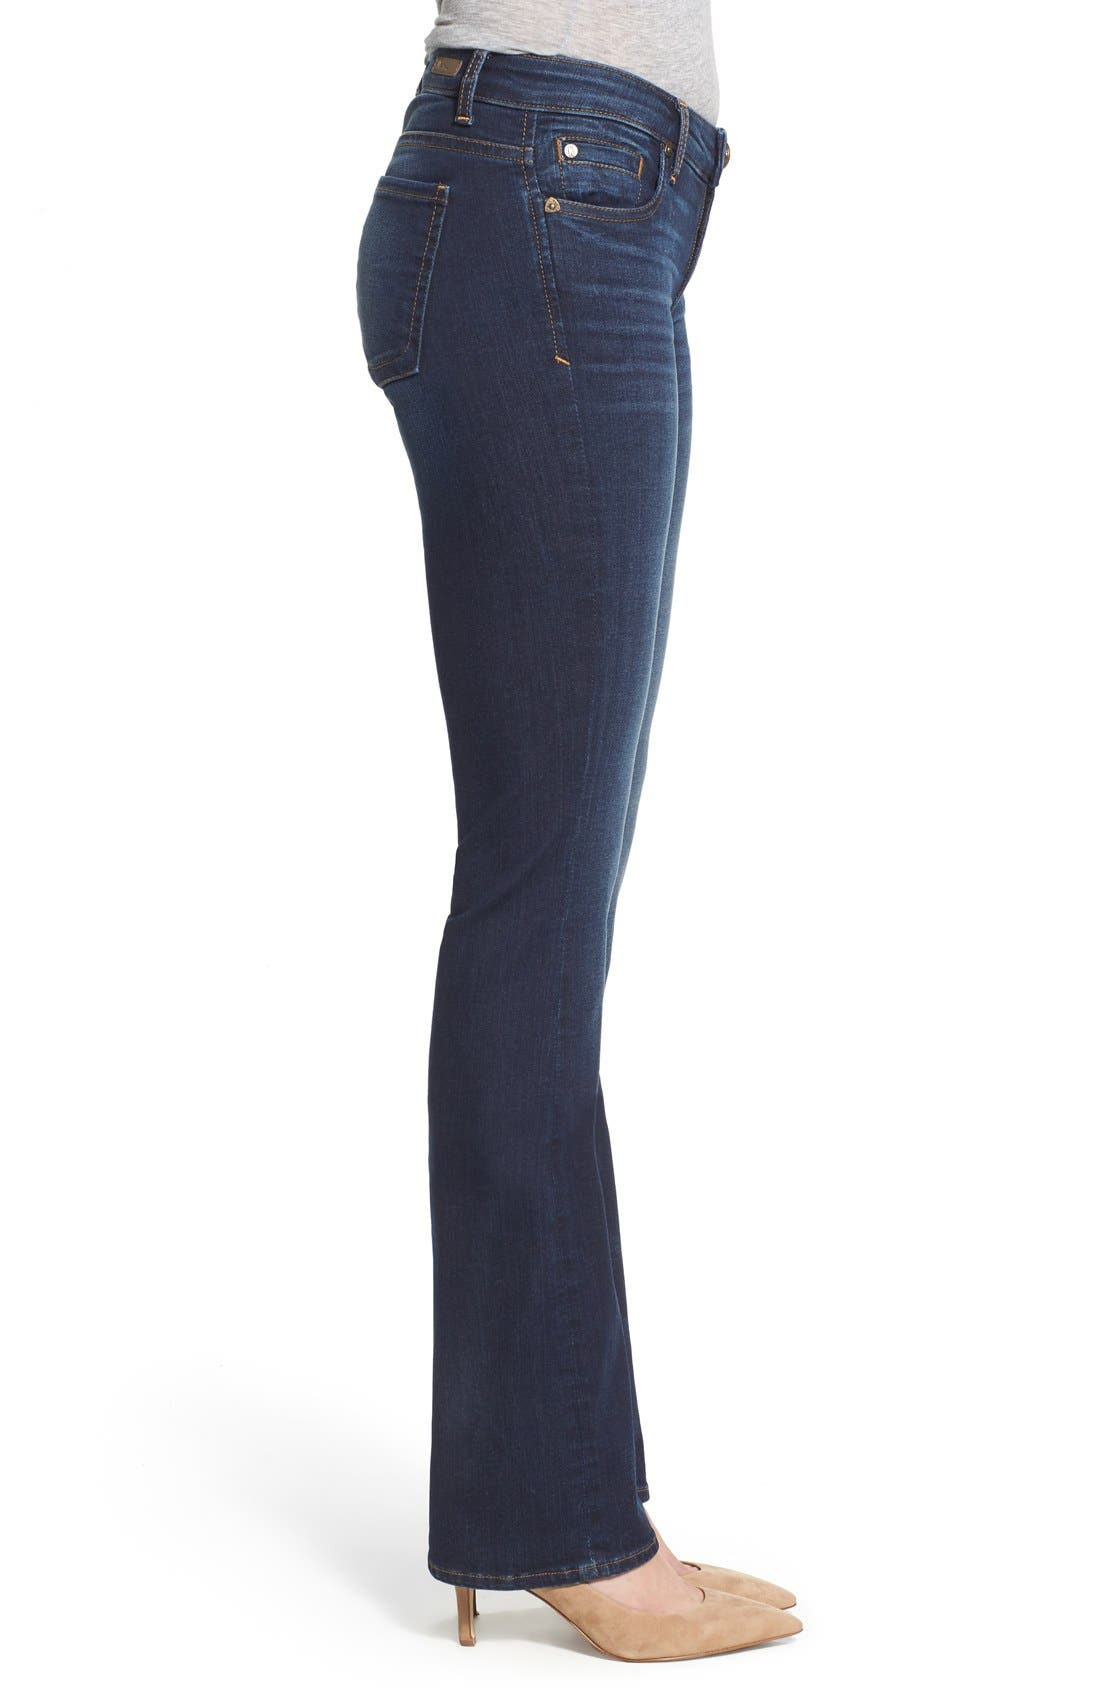 Alternate Image 4  - KUT from the Kloth 'Natalie' Stretch Bootleg Jeans (Closeness)